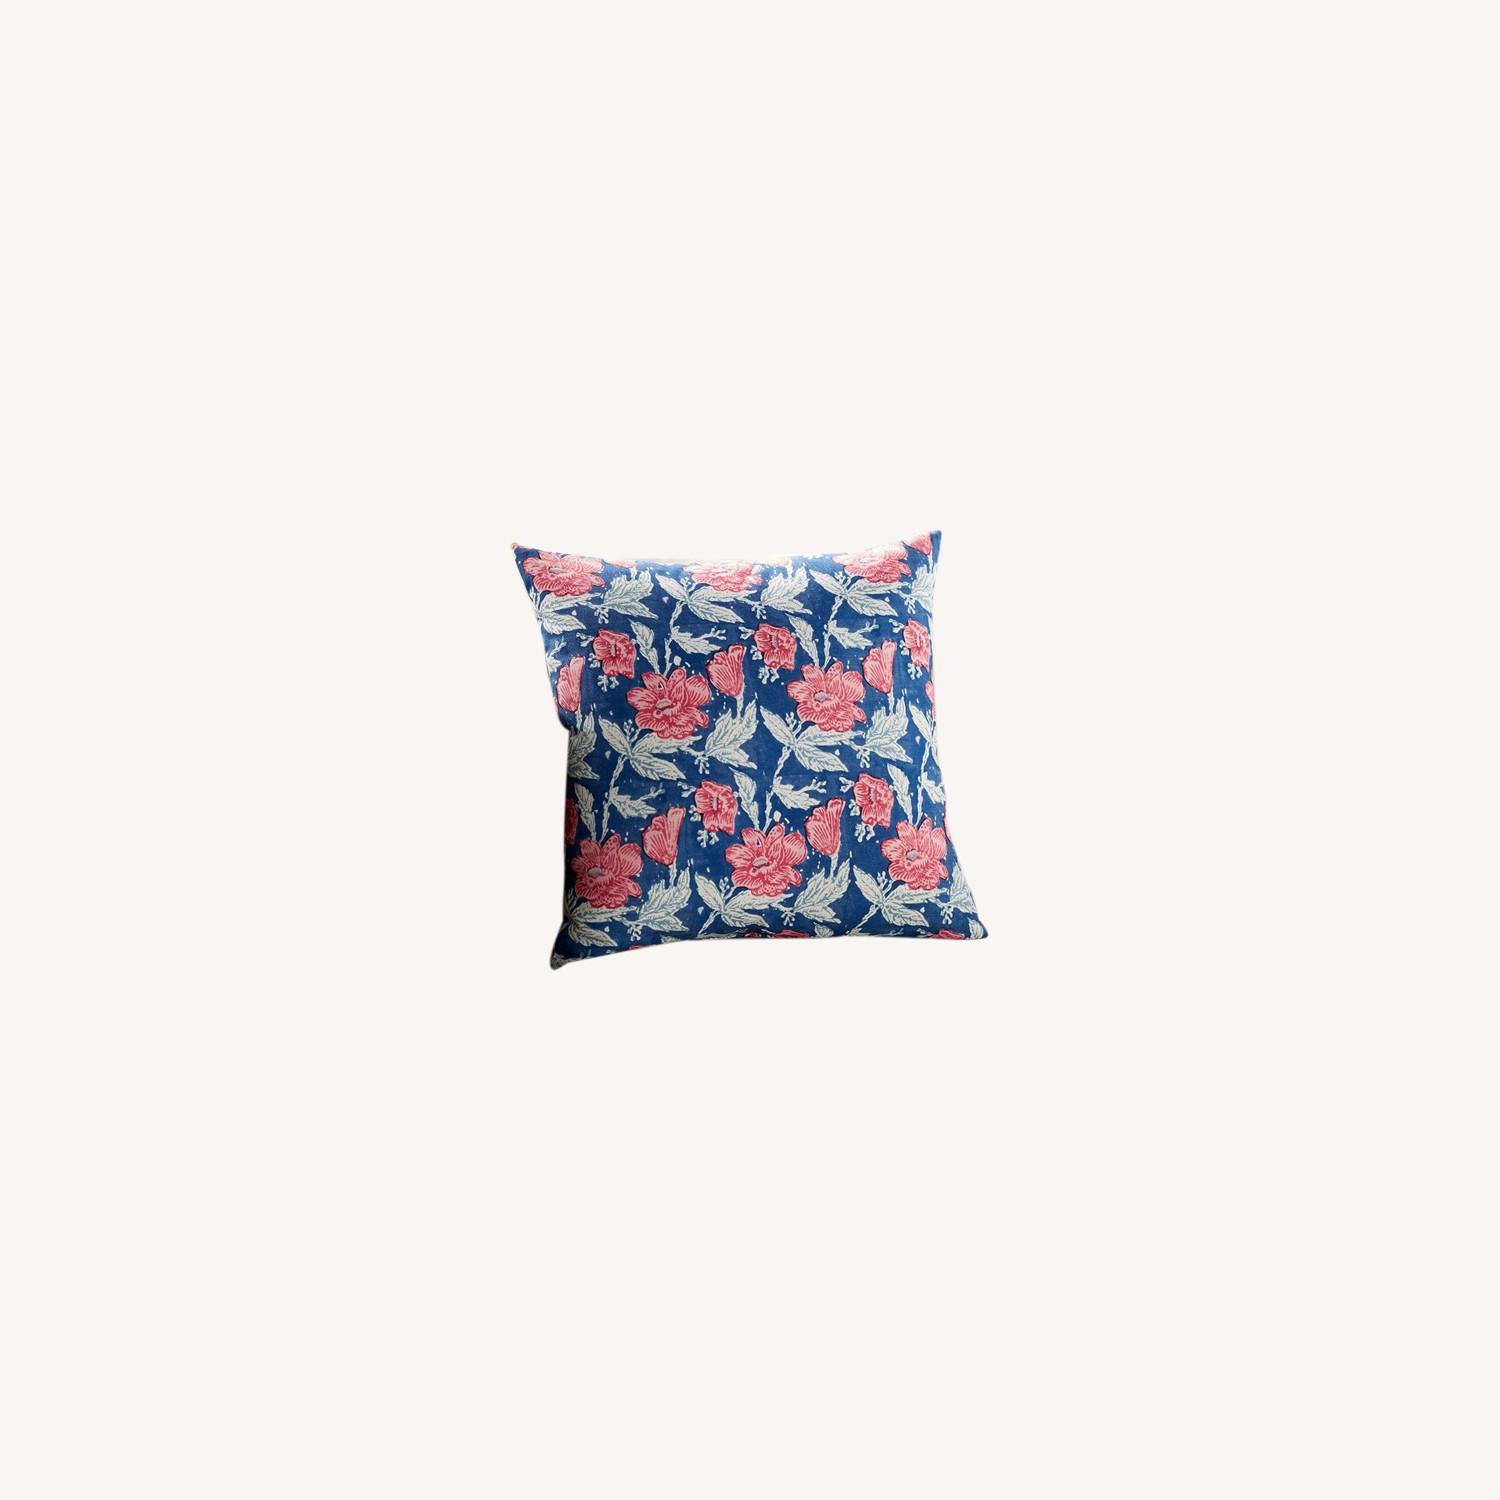 Pottery Barn Indoor/Outdoor Pillow - Set of 8 - image-0